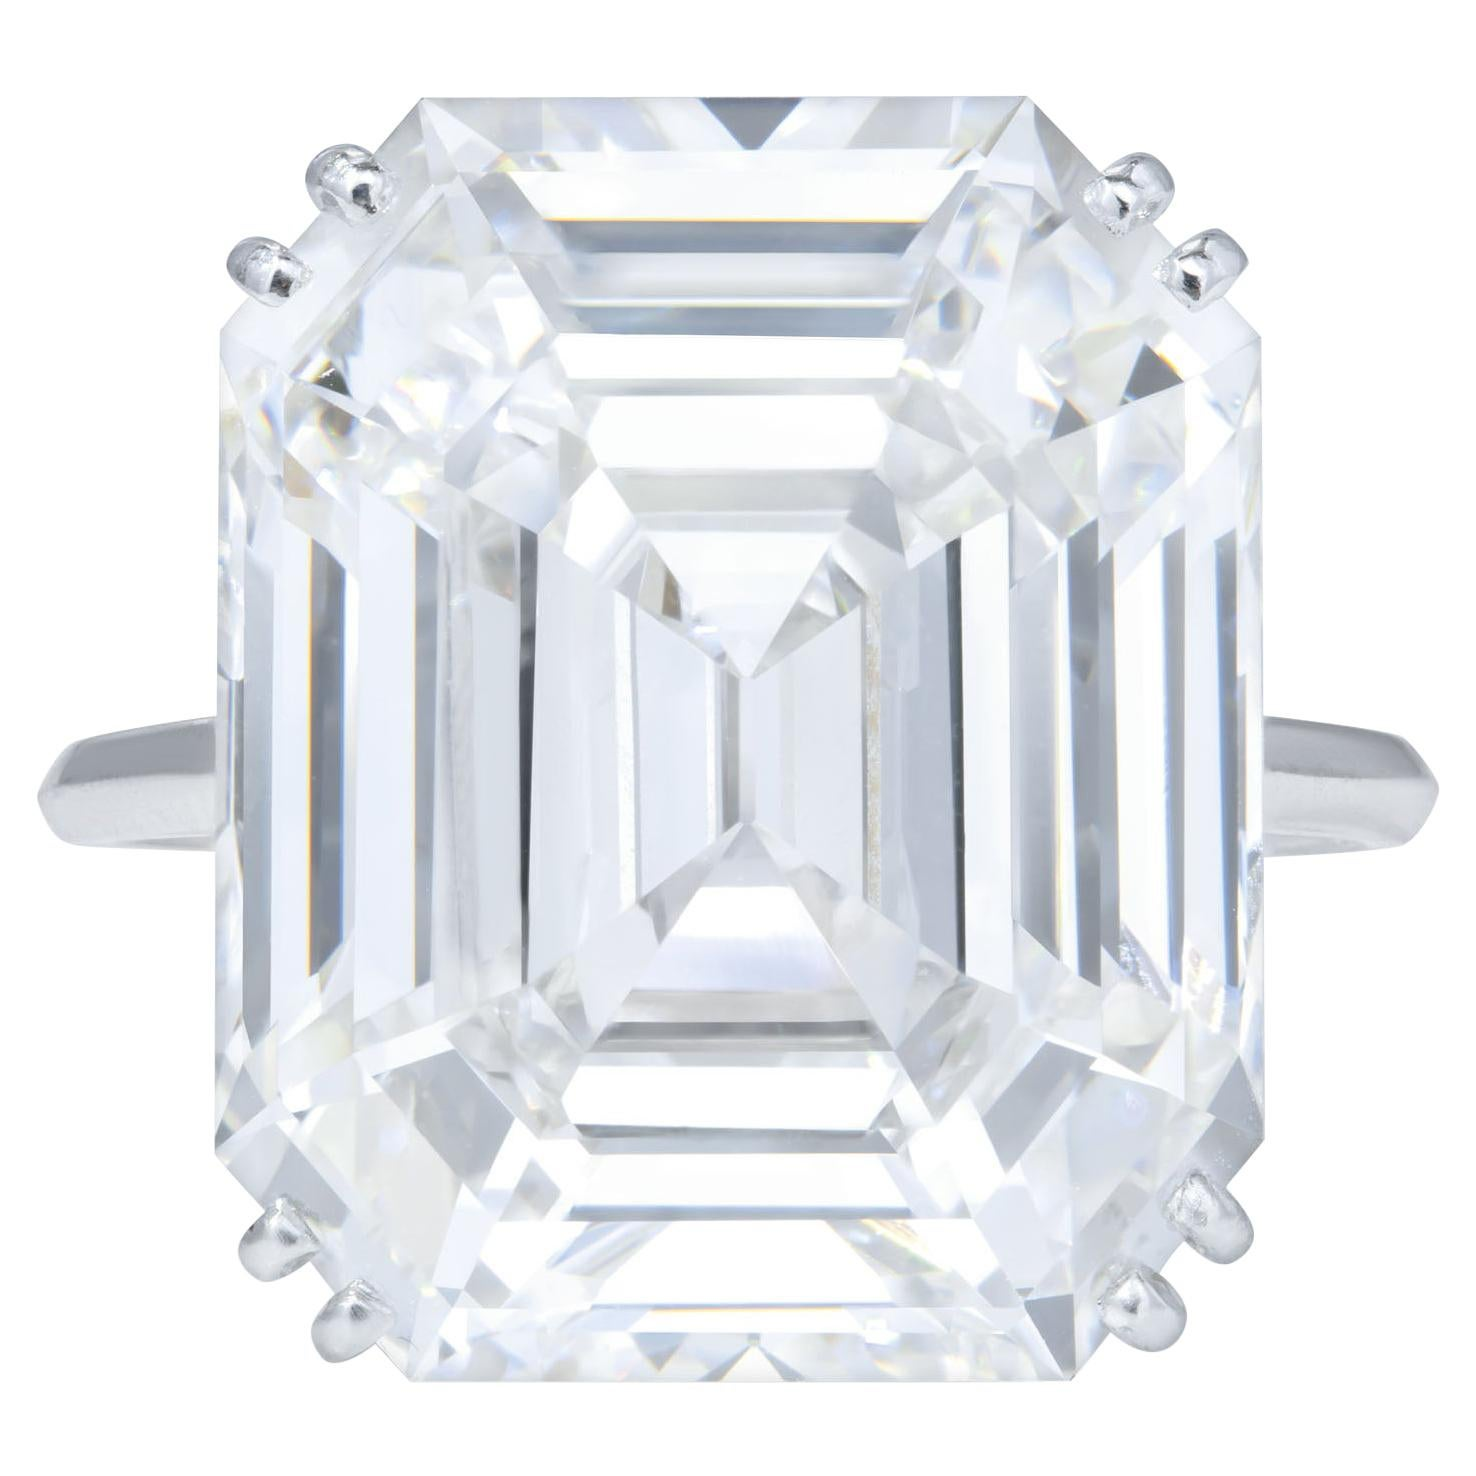 Exceptional GIA Certified 10.68 Carat Emerald Cut Diamond Ring